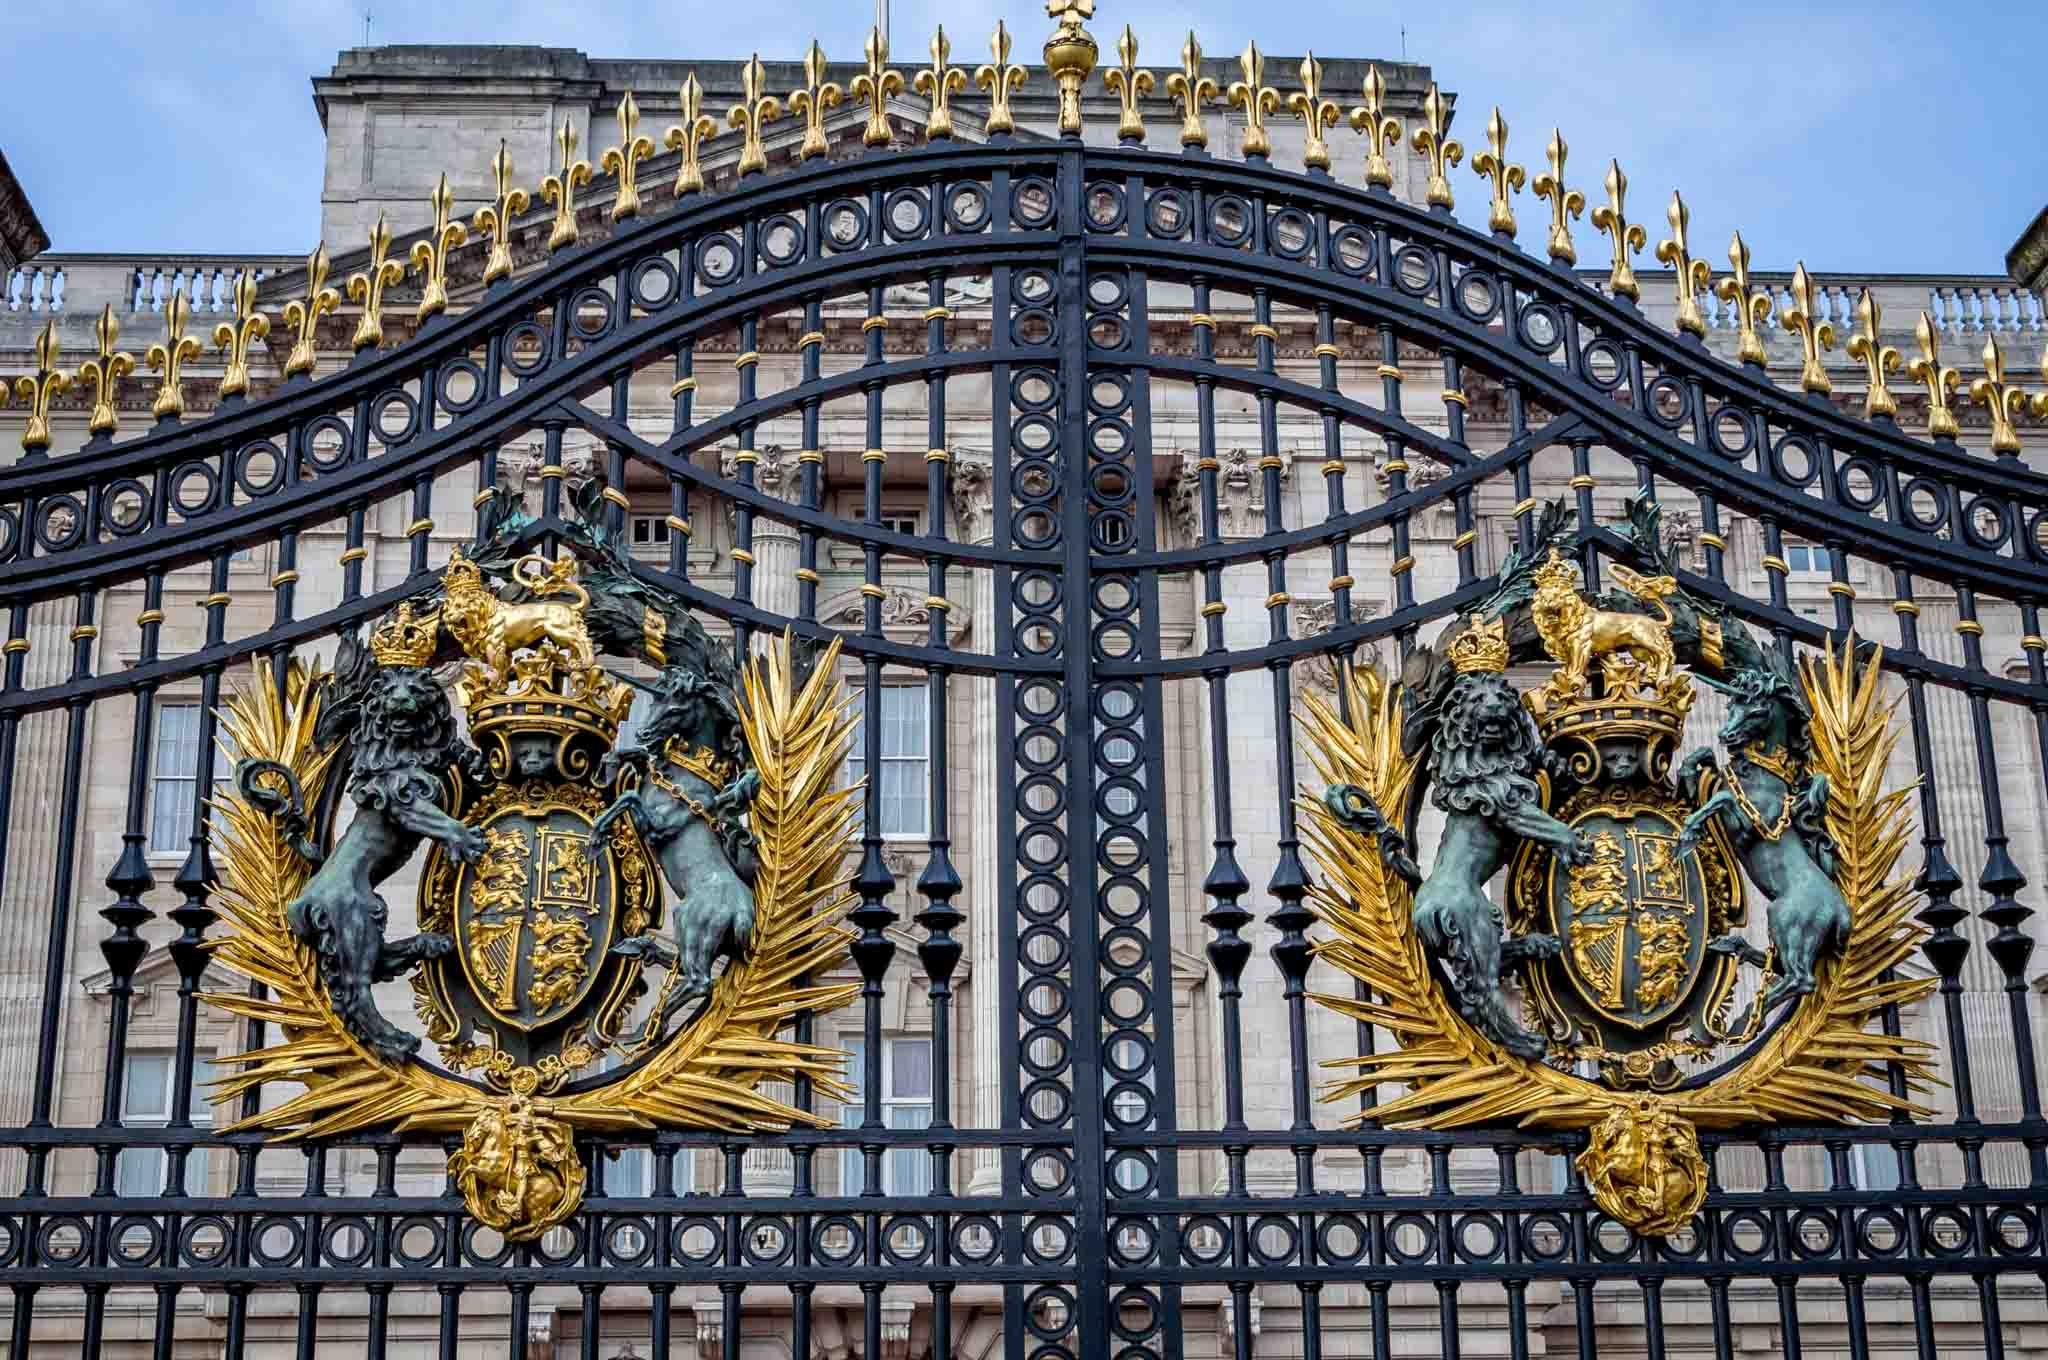 Seeing the Gates on Buckingham Palace in London. We wondered: Can I leave the airport during a layover? Turns out, yes!  Take the LHR to London train and explore the city.